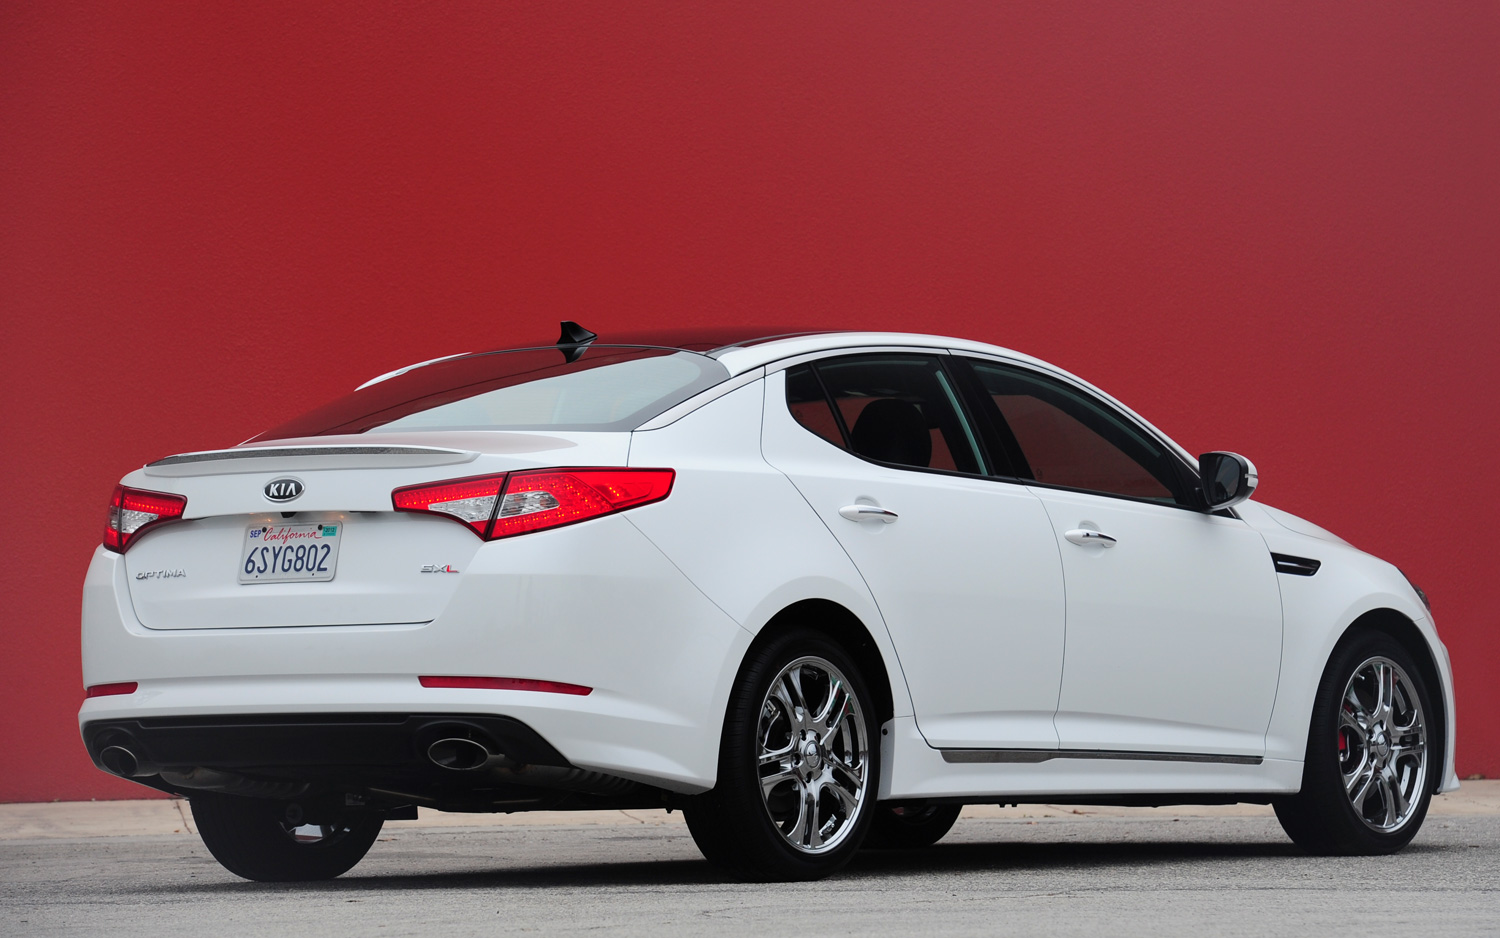 2012 Kia Optima rear three quarter Photo on June 4, 2012 #213535 ...